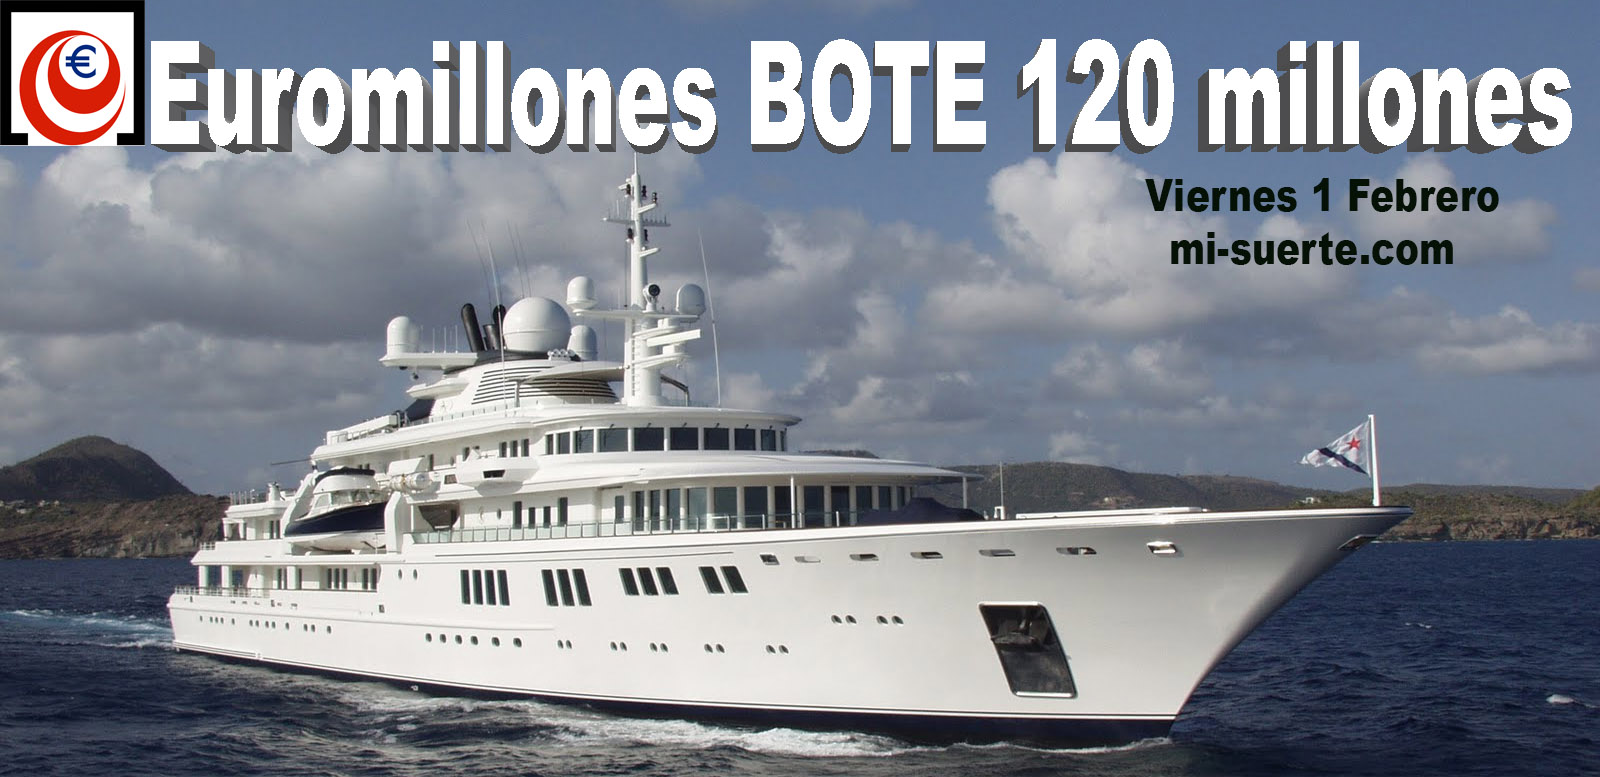 Bote extra euromillones 120 millones